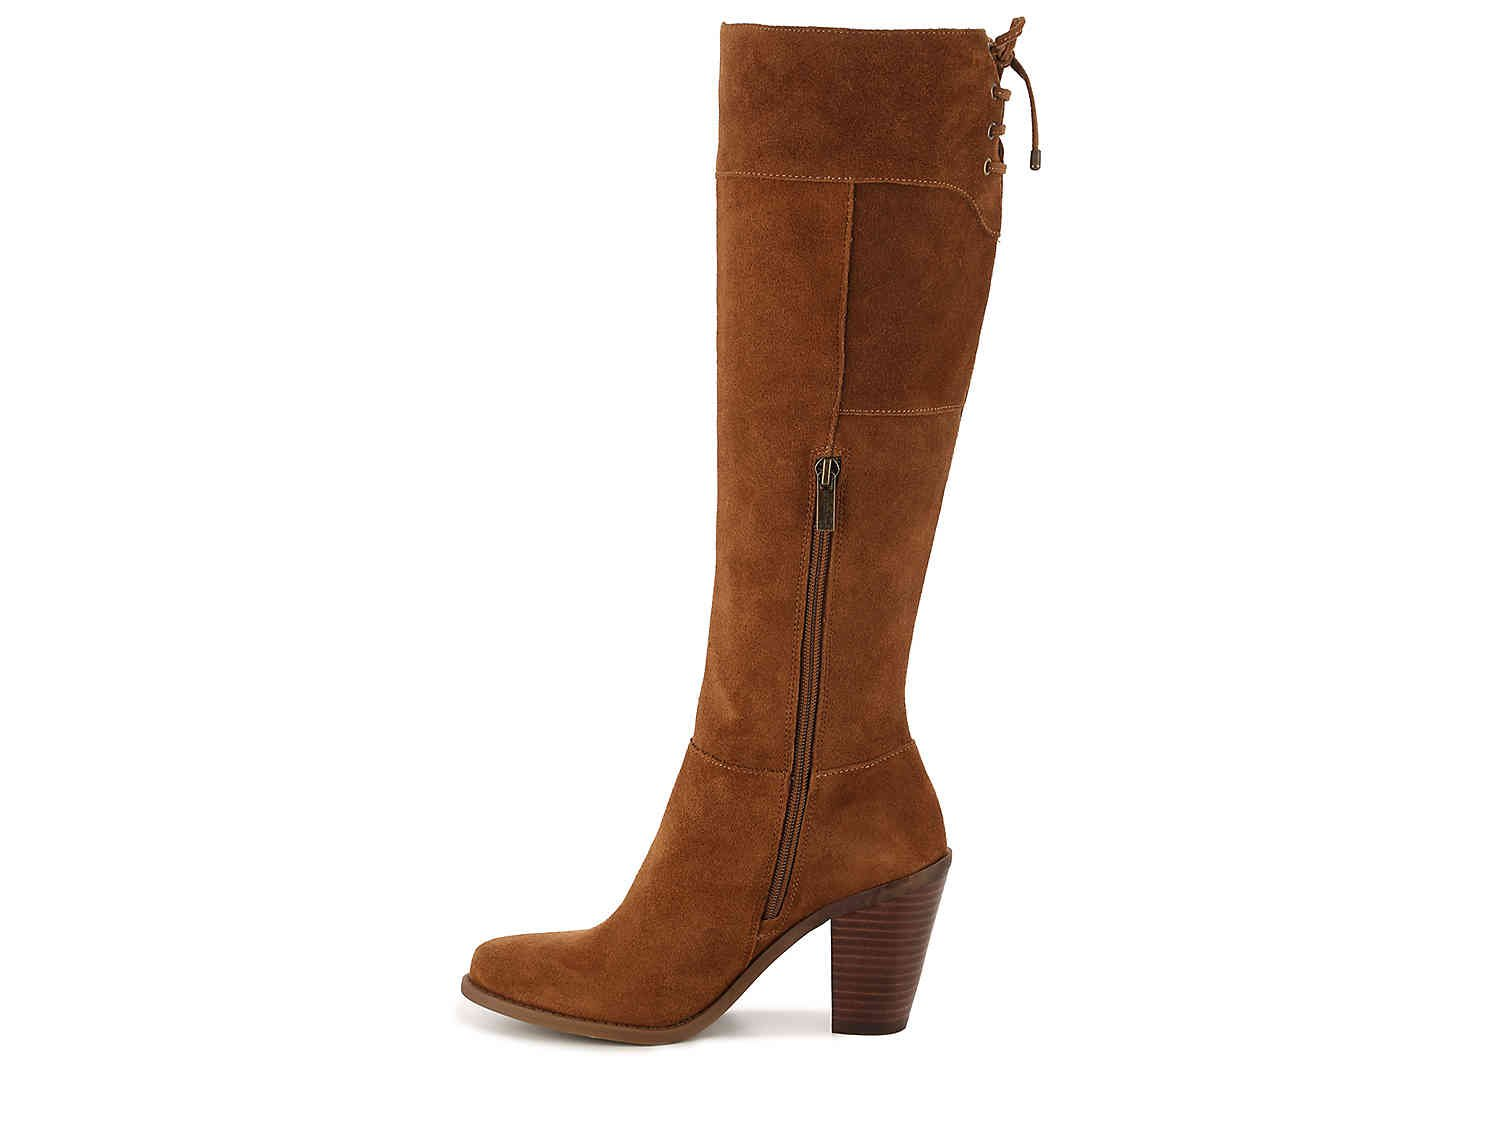 Jessica Simpson Women's Ciarah Winter Boot B01MYNUVC9 10 B(M) US|Brown